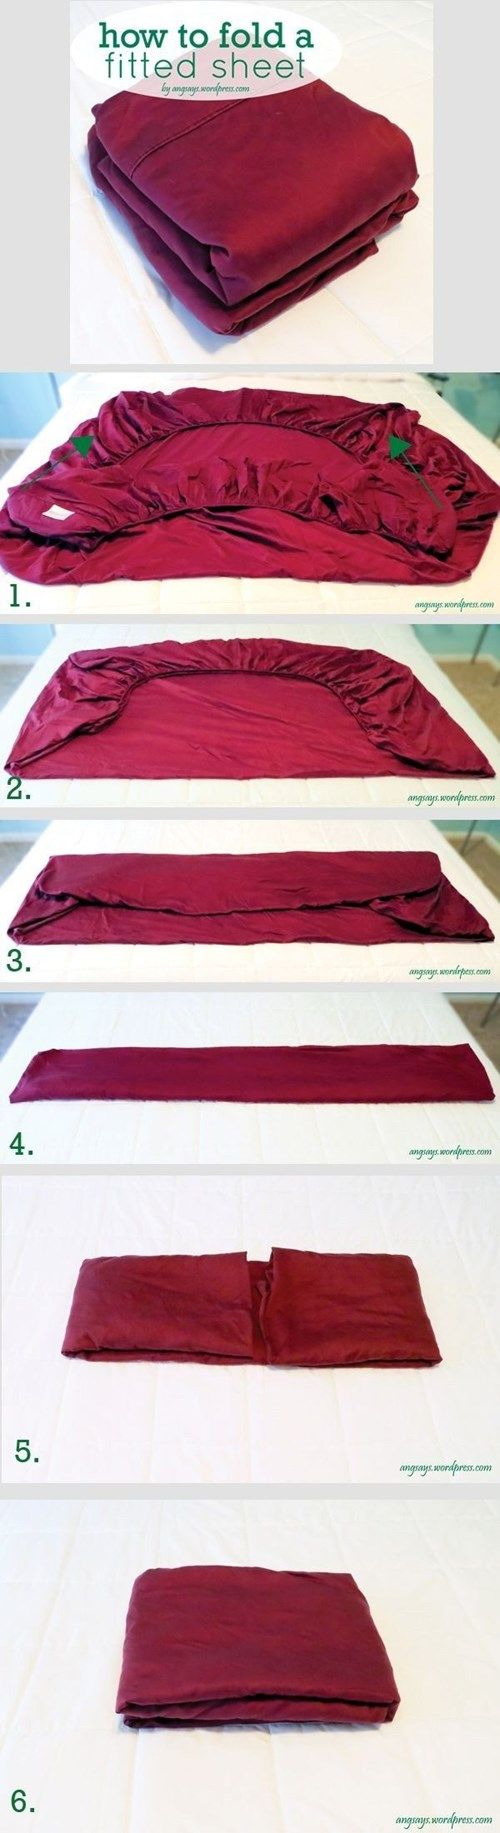 How to fold a feeted sheet